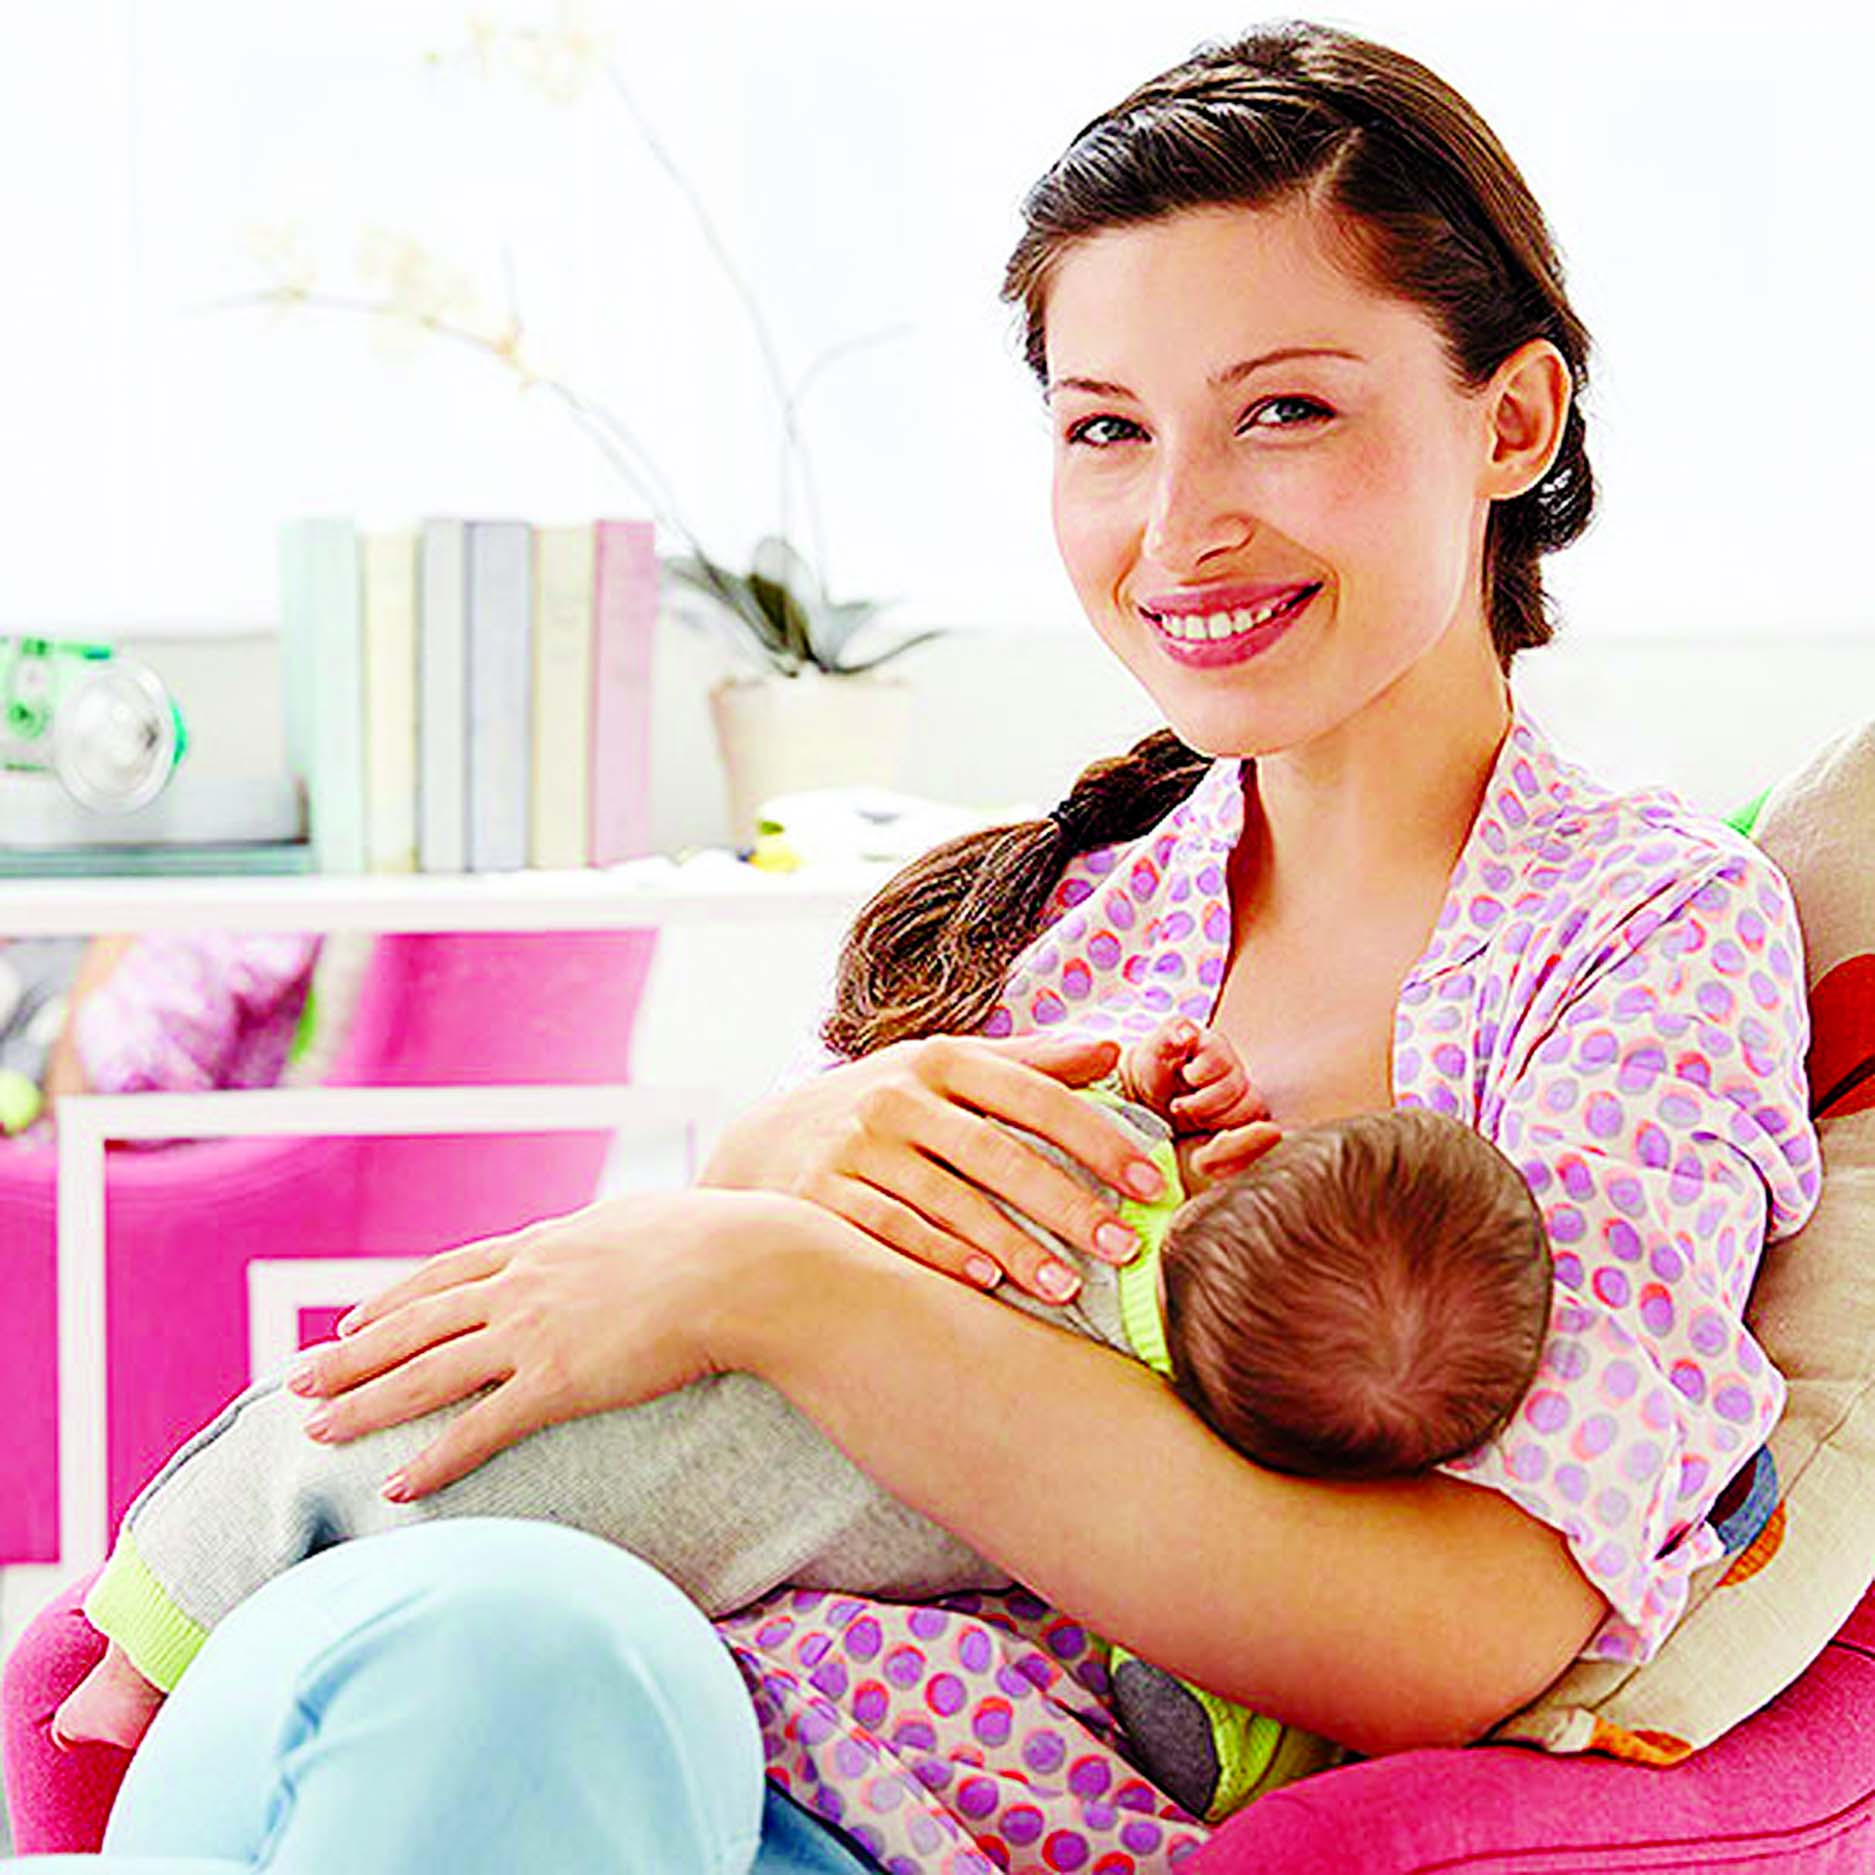 Breastfeeding may cut chronic  pain from C-section